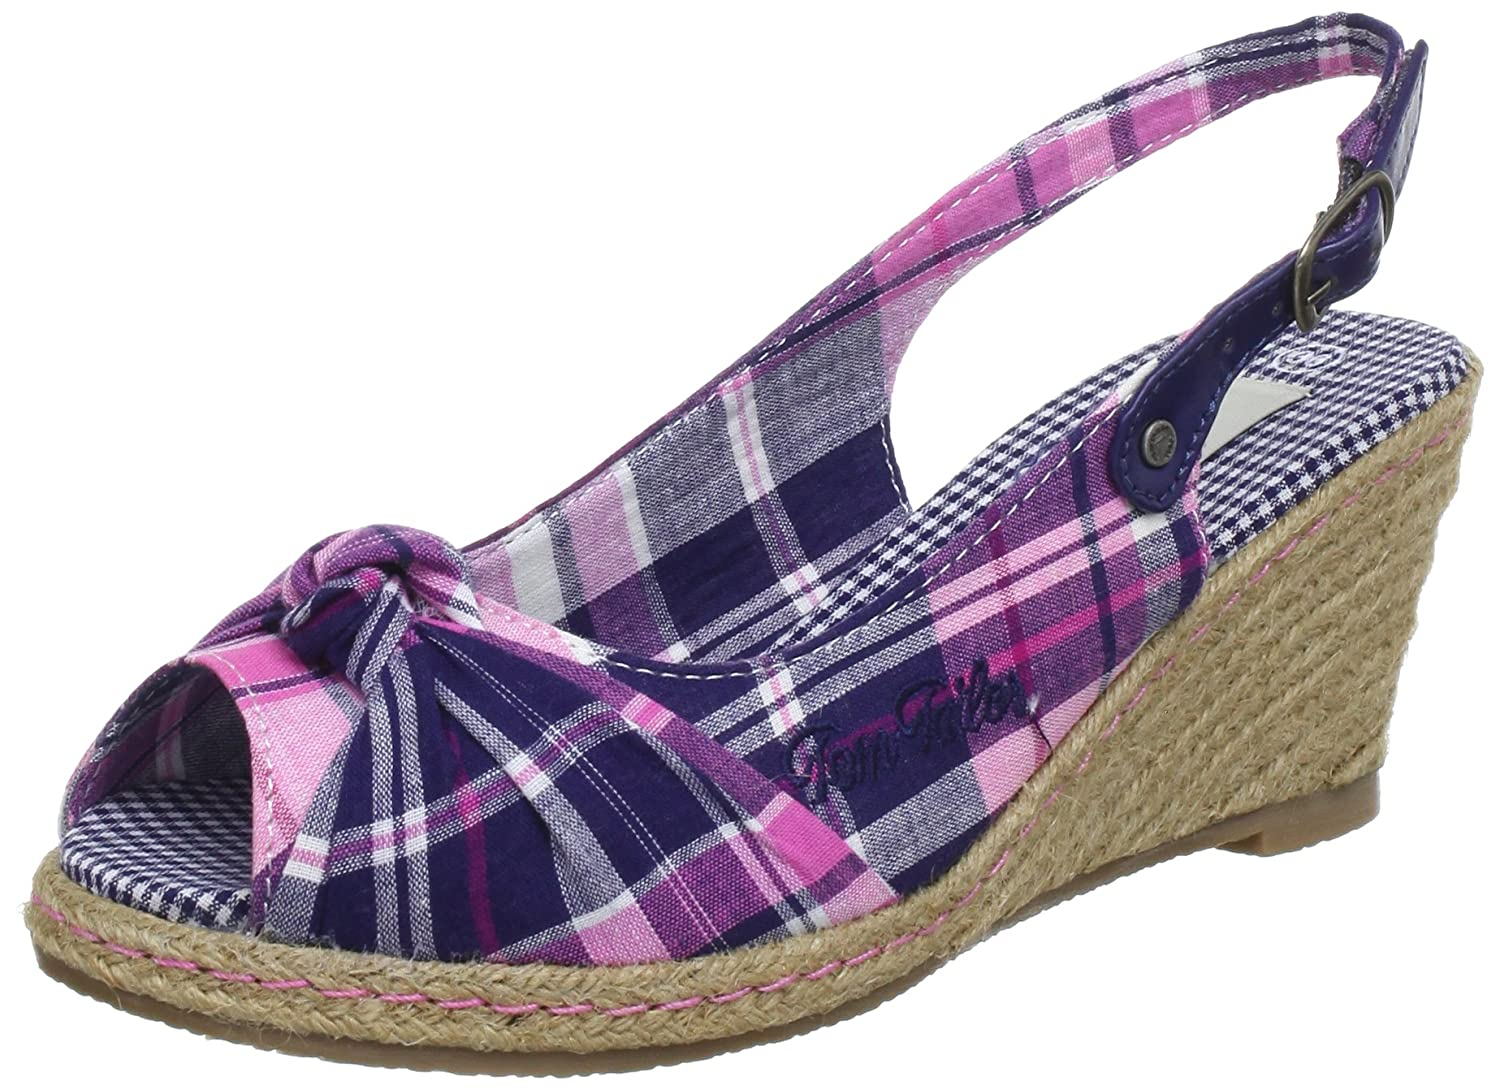 Tom Tailor Varese 616200 Damen Espadrille